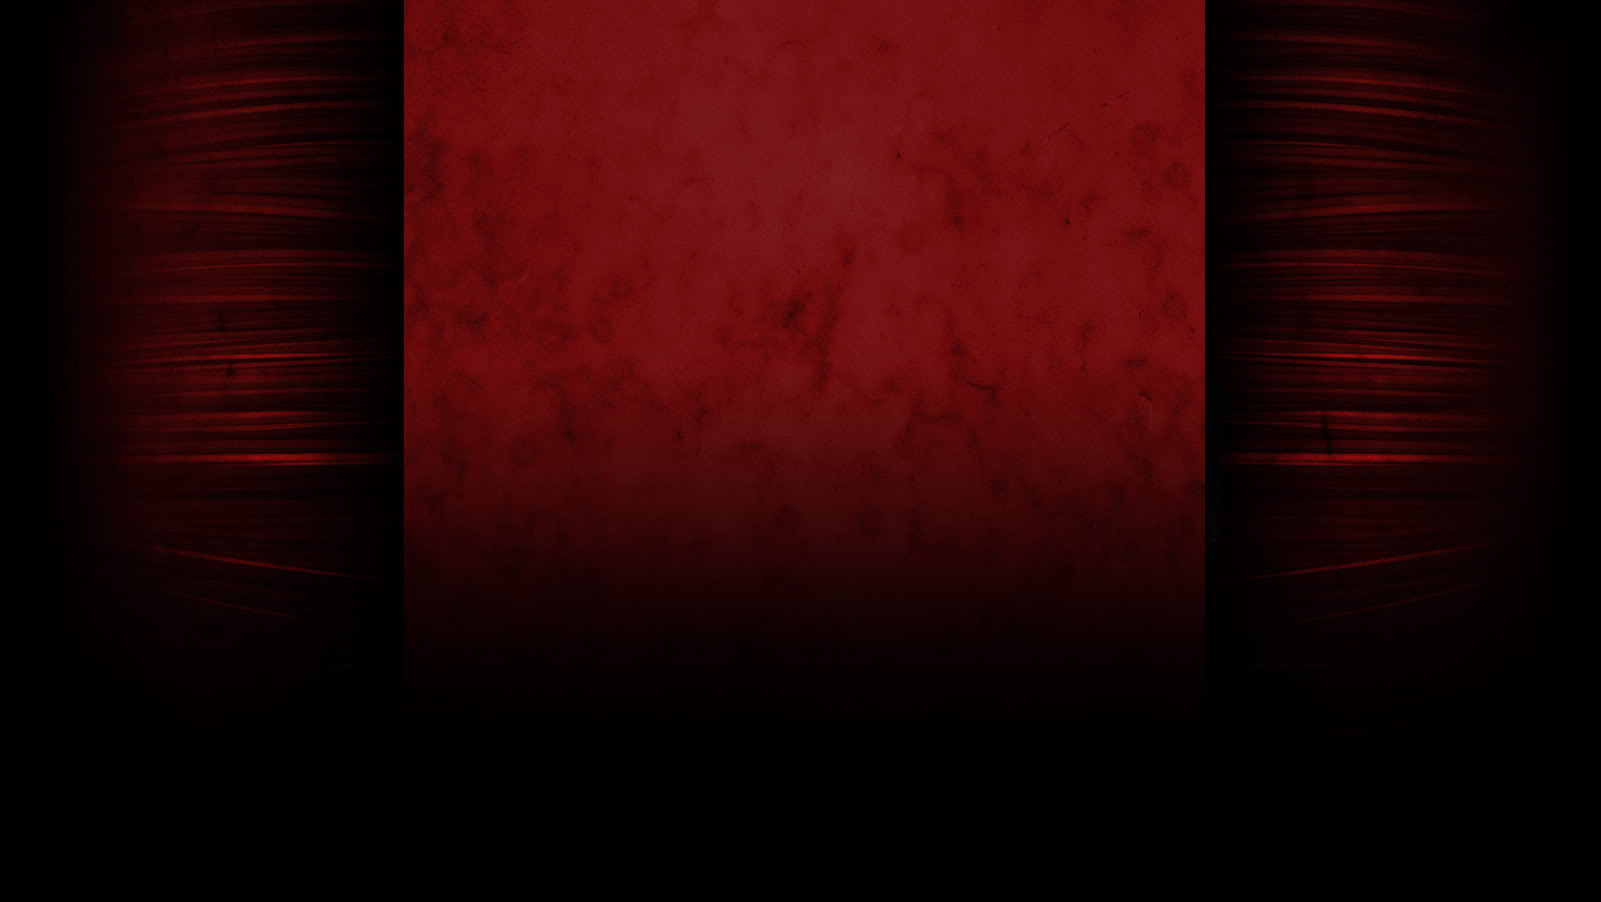 Black red background graphics code black red background commentsjpg 1601x902